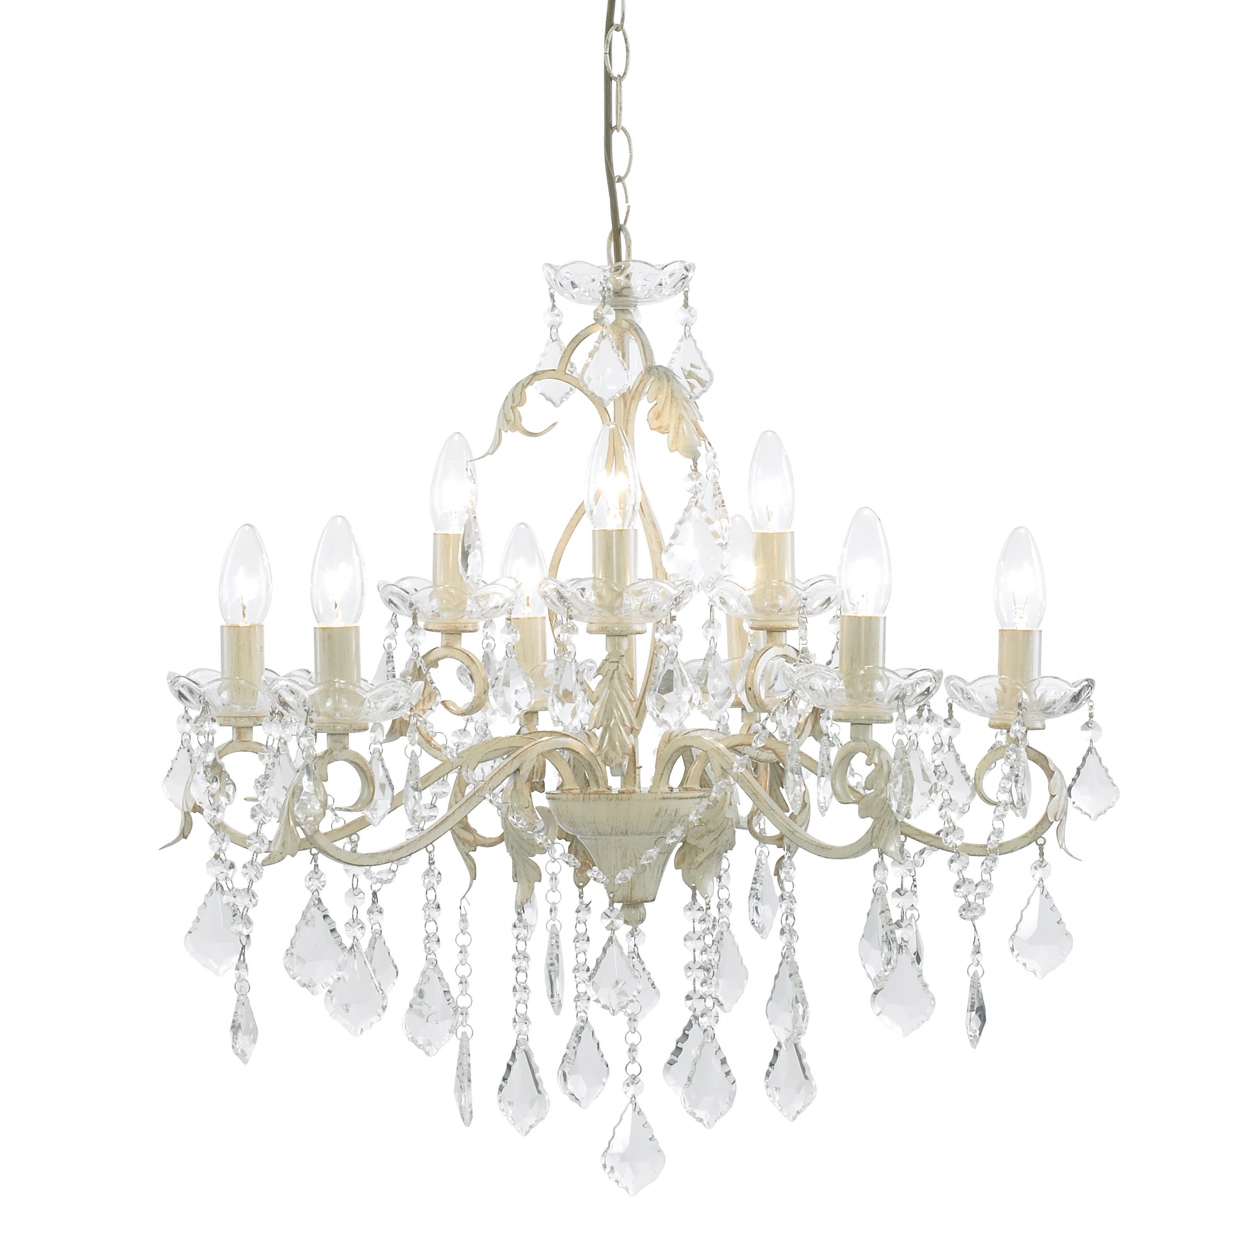 Awesome Crystal Chandelier Design Ideas And Decor For Cream Chandeliers (Image 1 of 15)